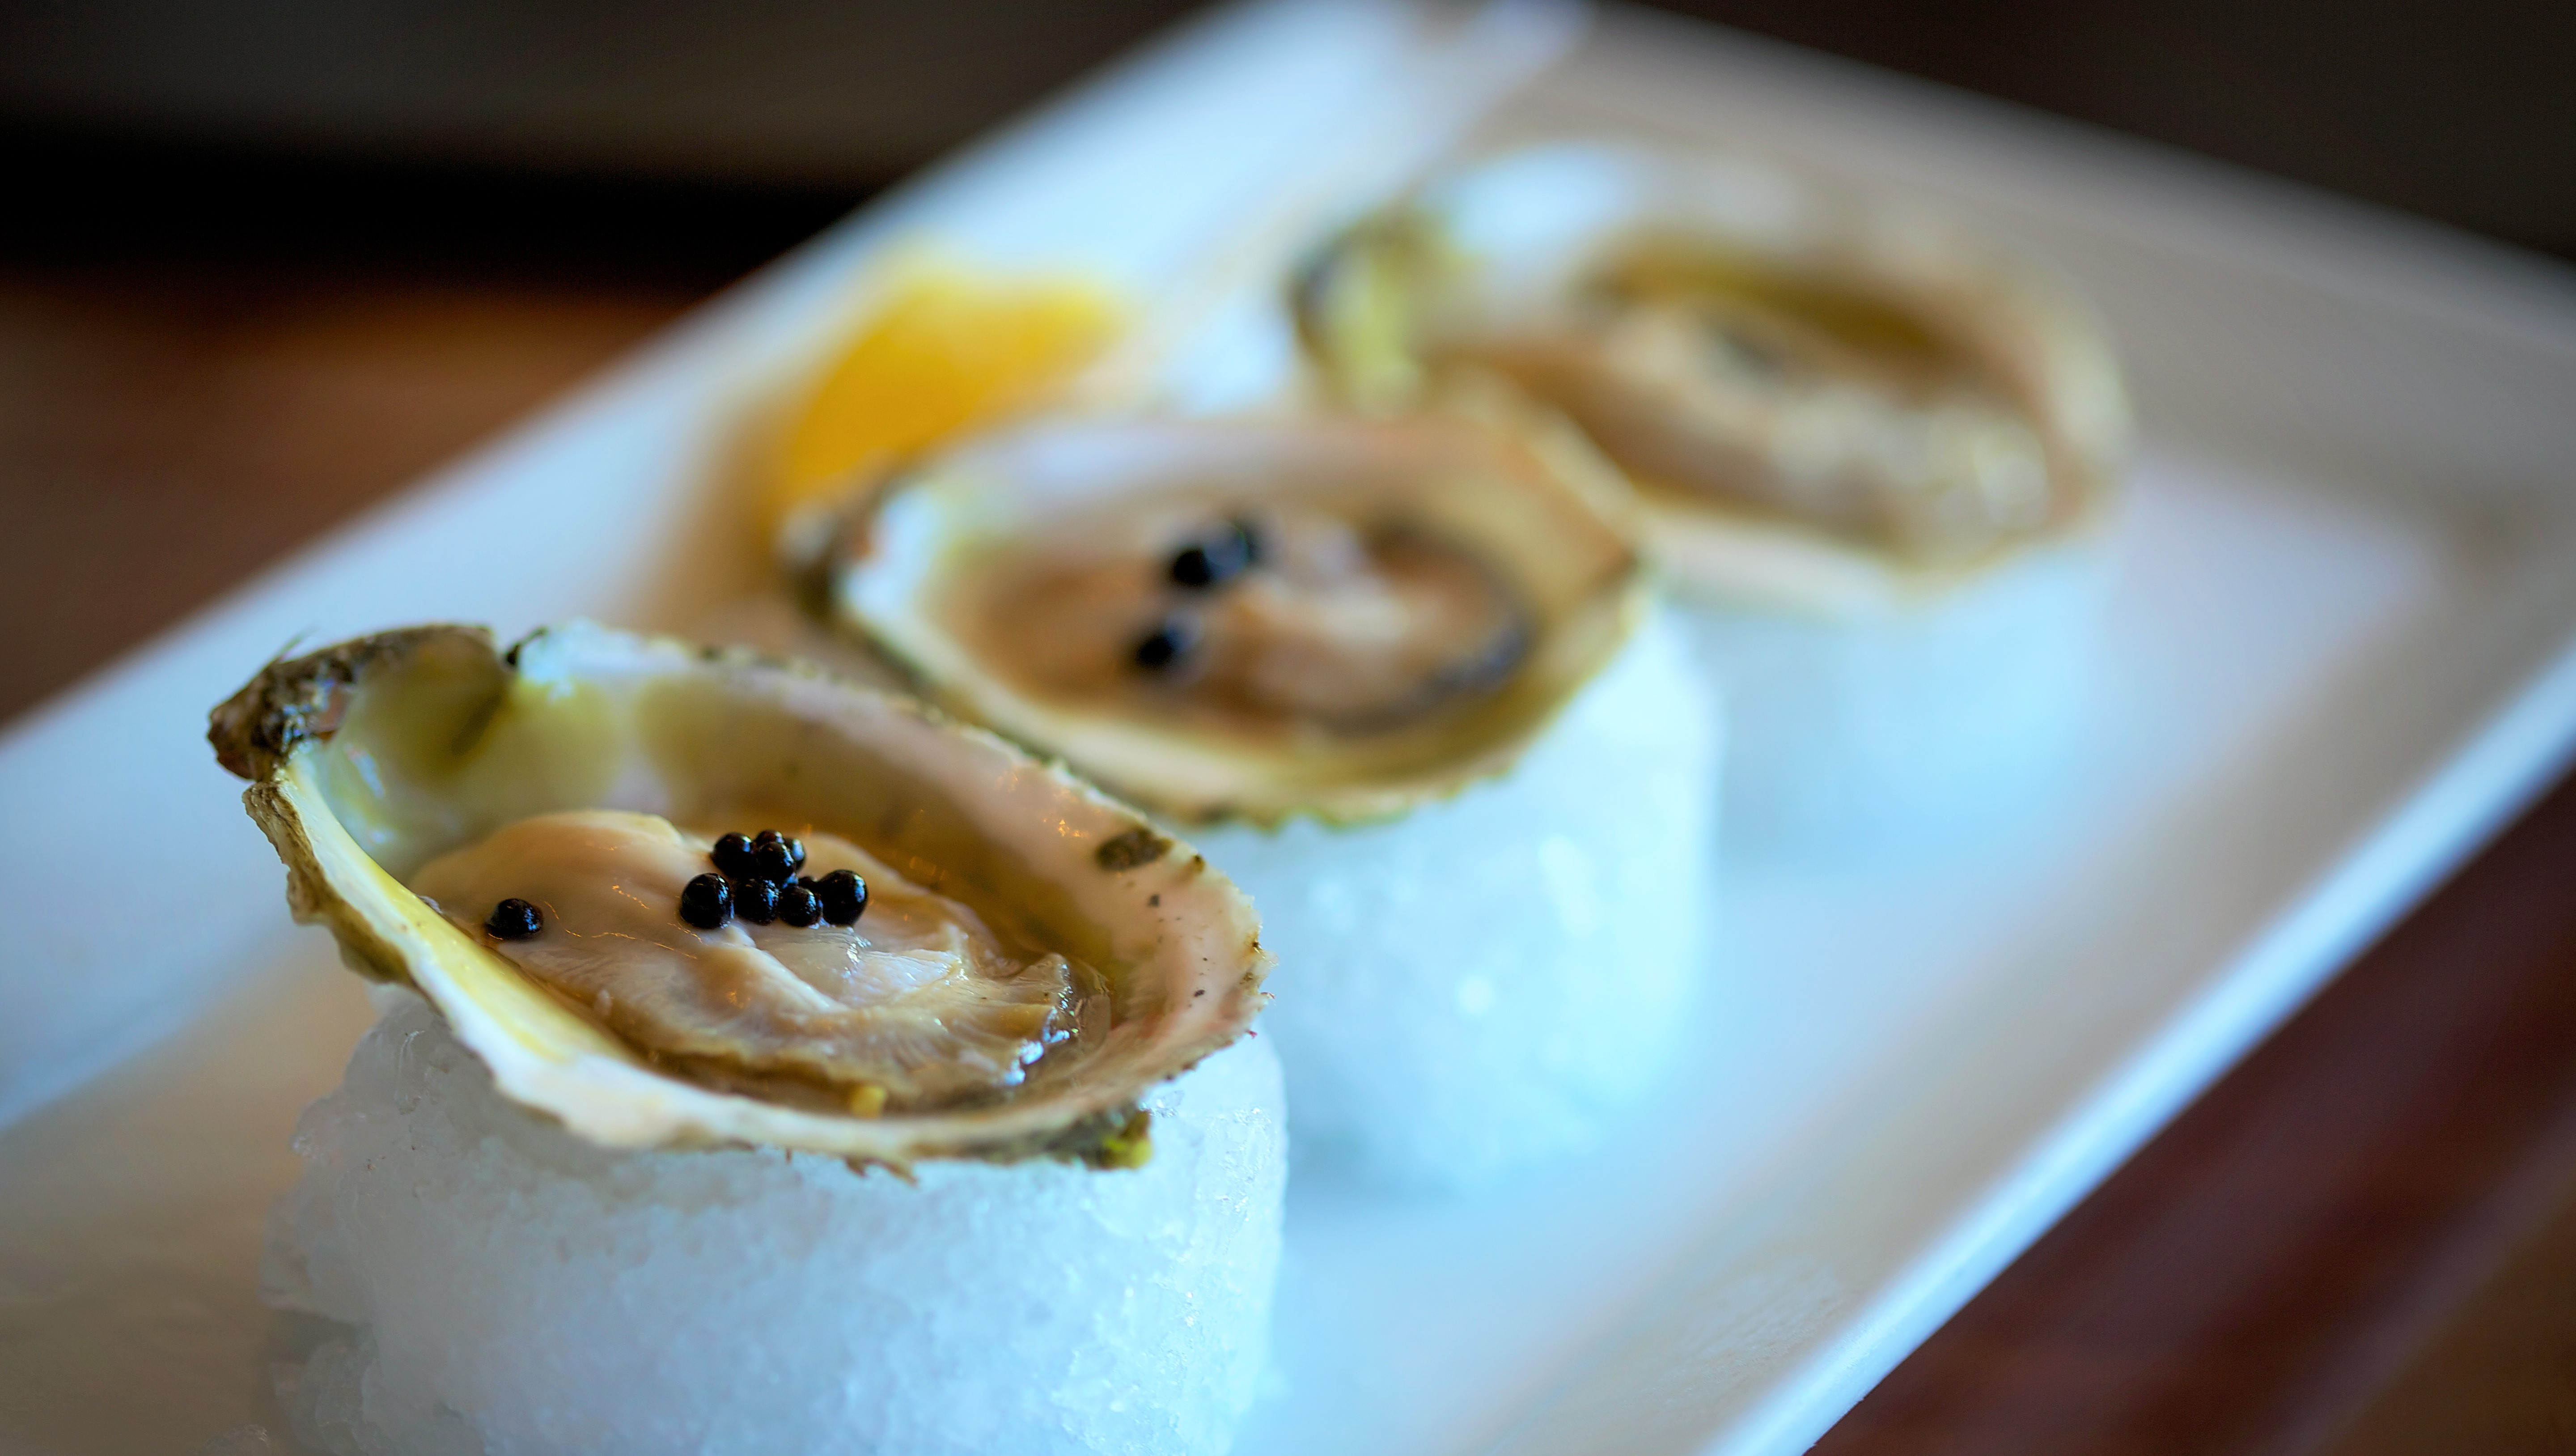 Tio Point Oysters